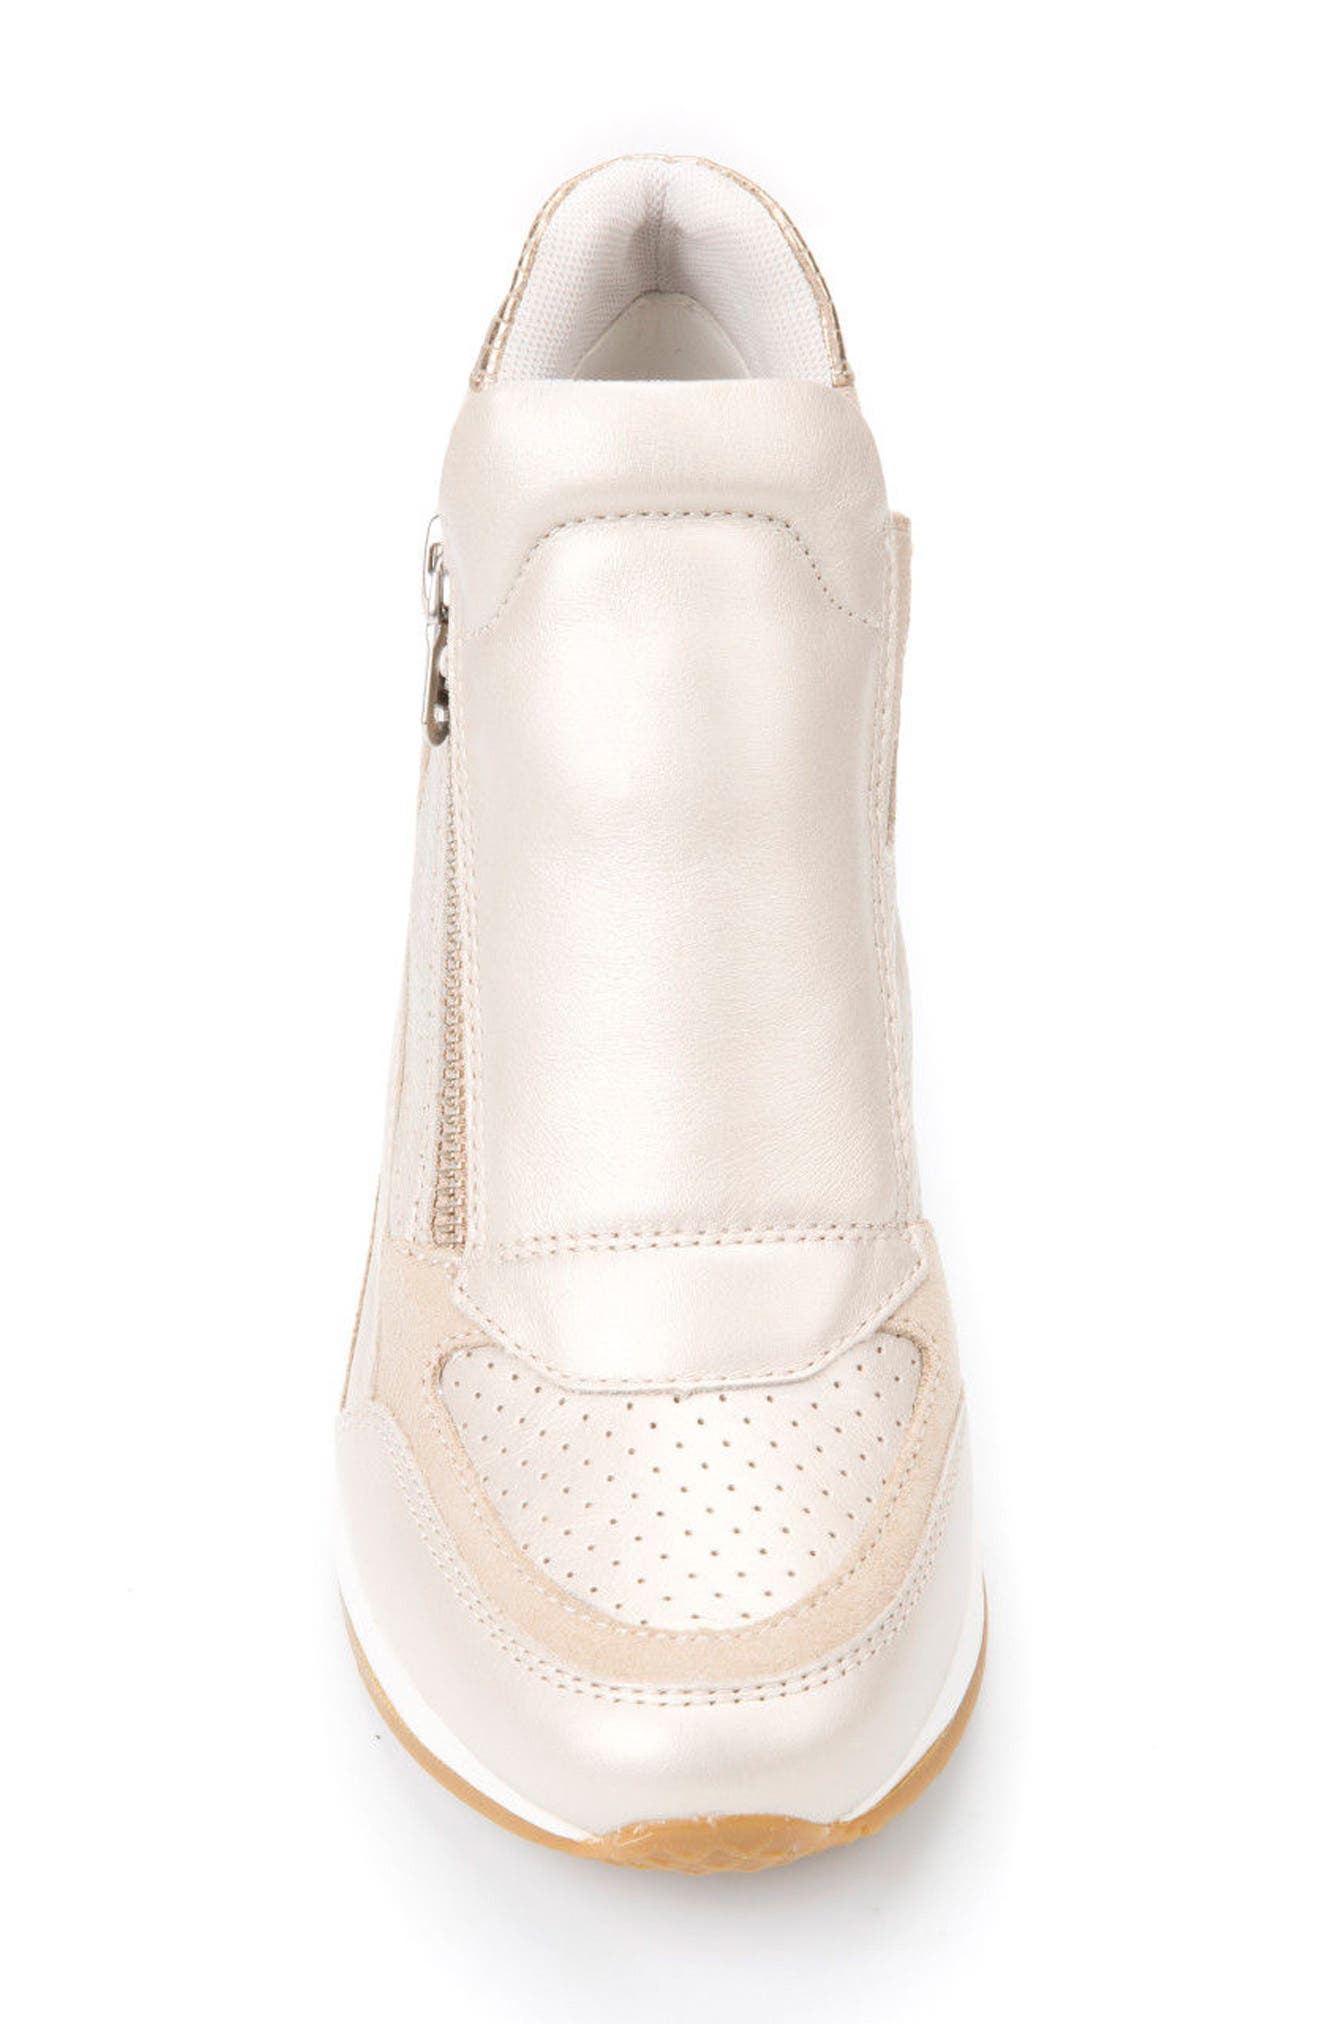 Nydame Wedge Sneaker,                             Alternate thumbnail 4, color,                             PLATINUM LEATHER